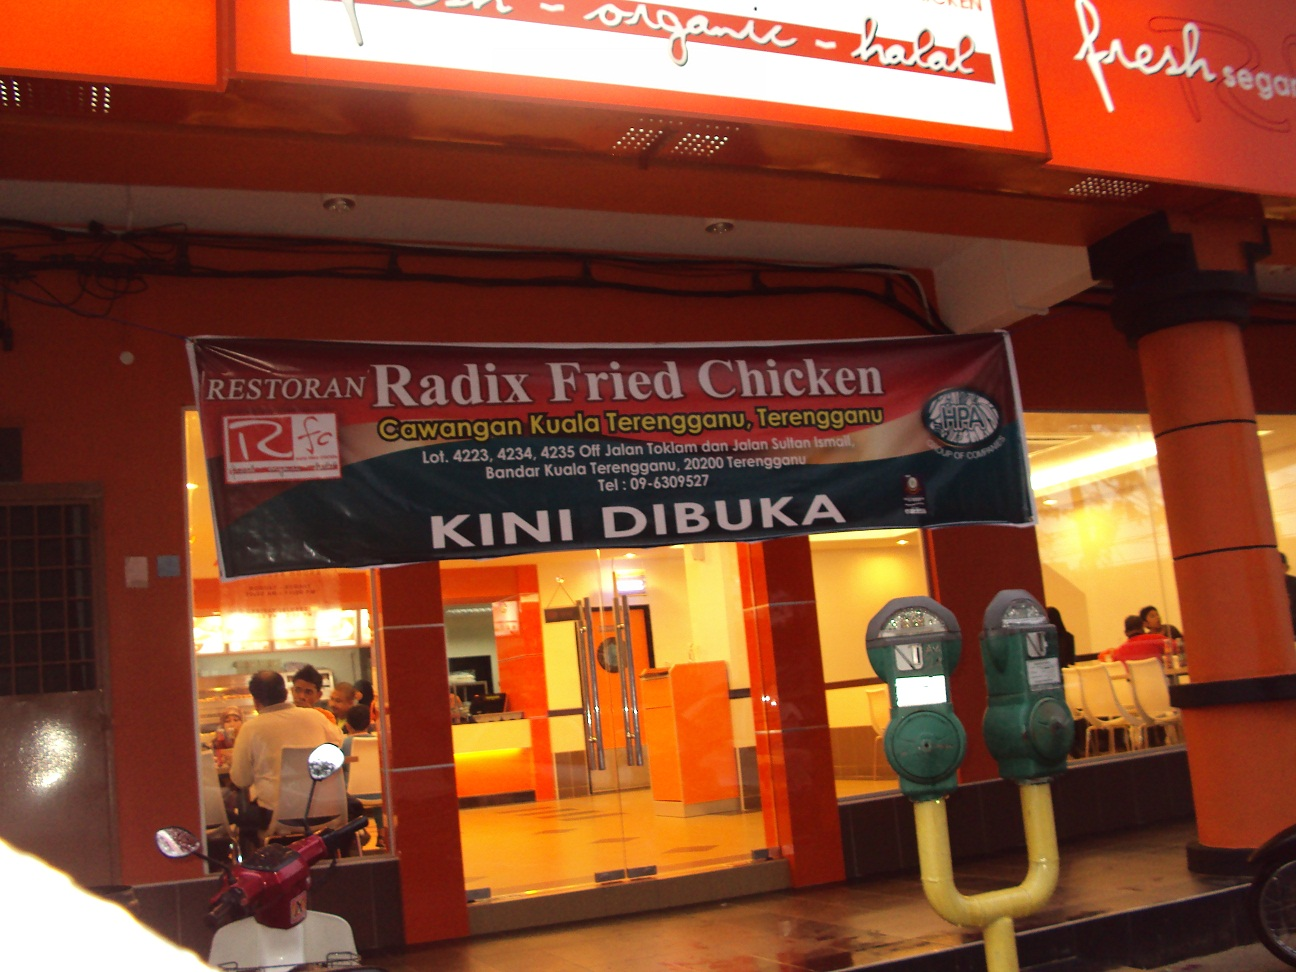 The business environment of Radix Fried Chicken